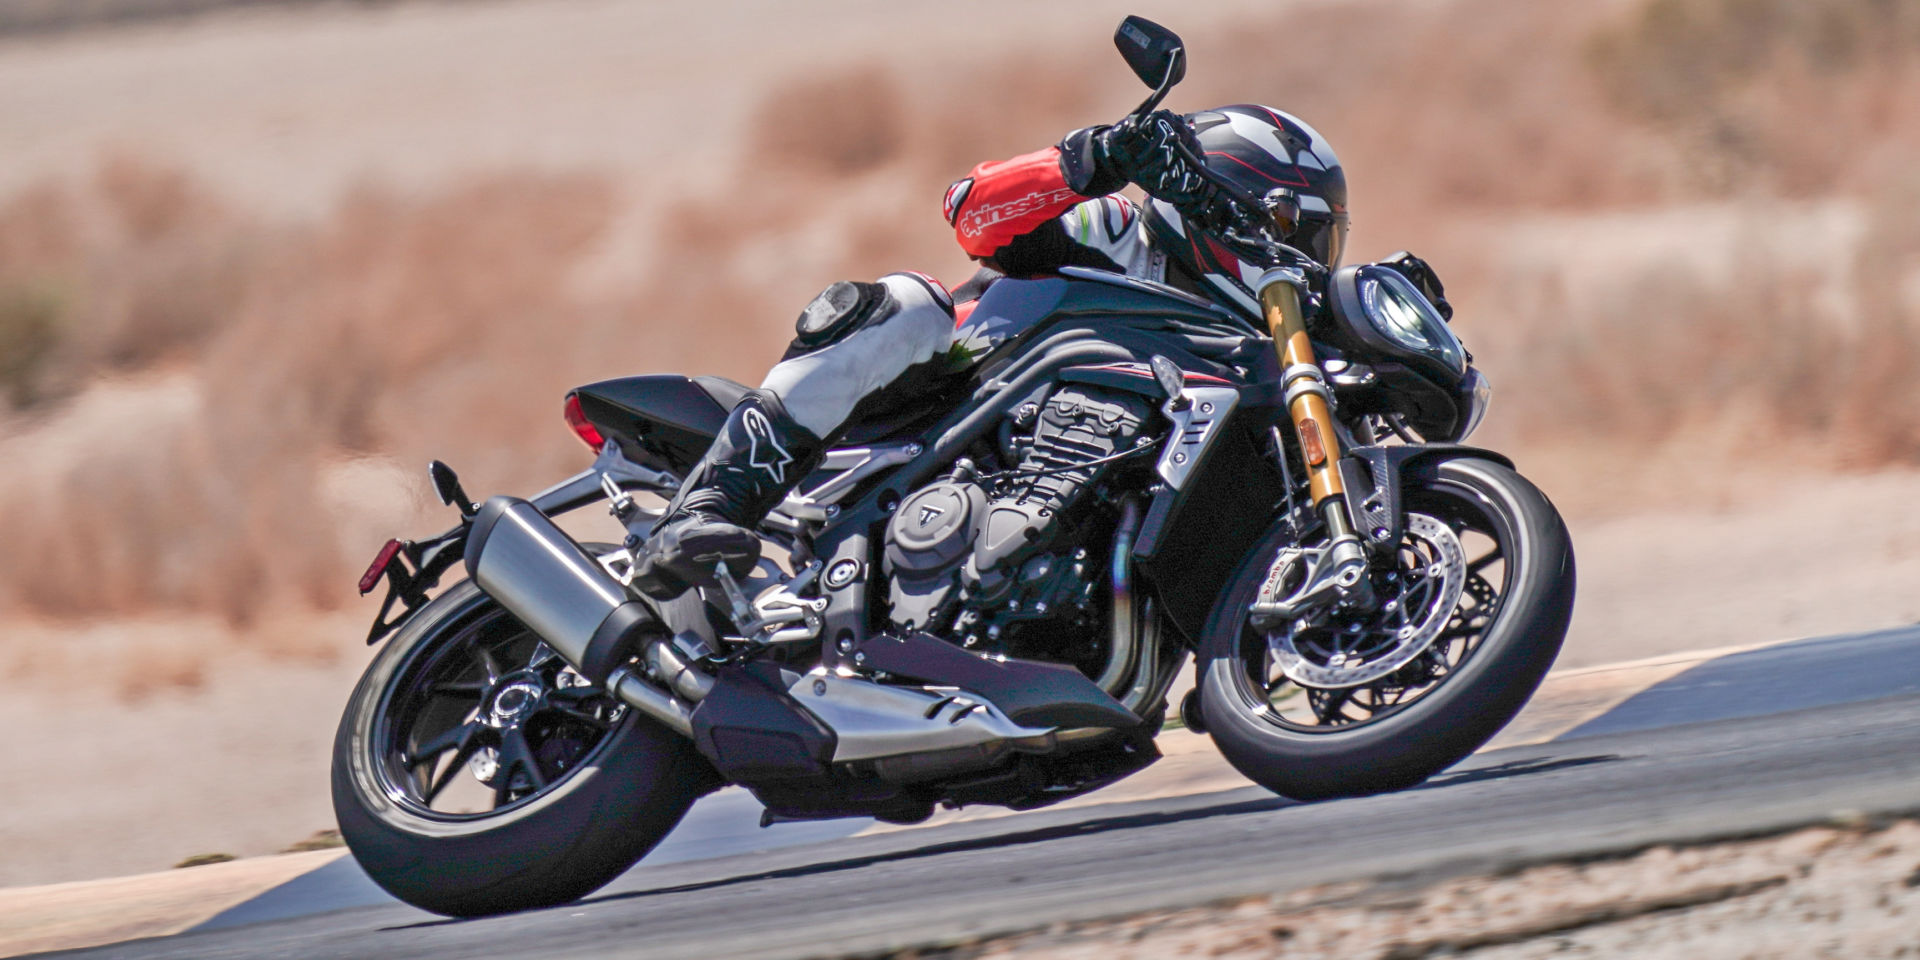 The 2022 Triumph Speed Triple 1200 RS is lighter, more compact, more powerful and has more features than its predecessor. Photo courtesy Triumph.